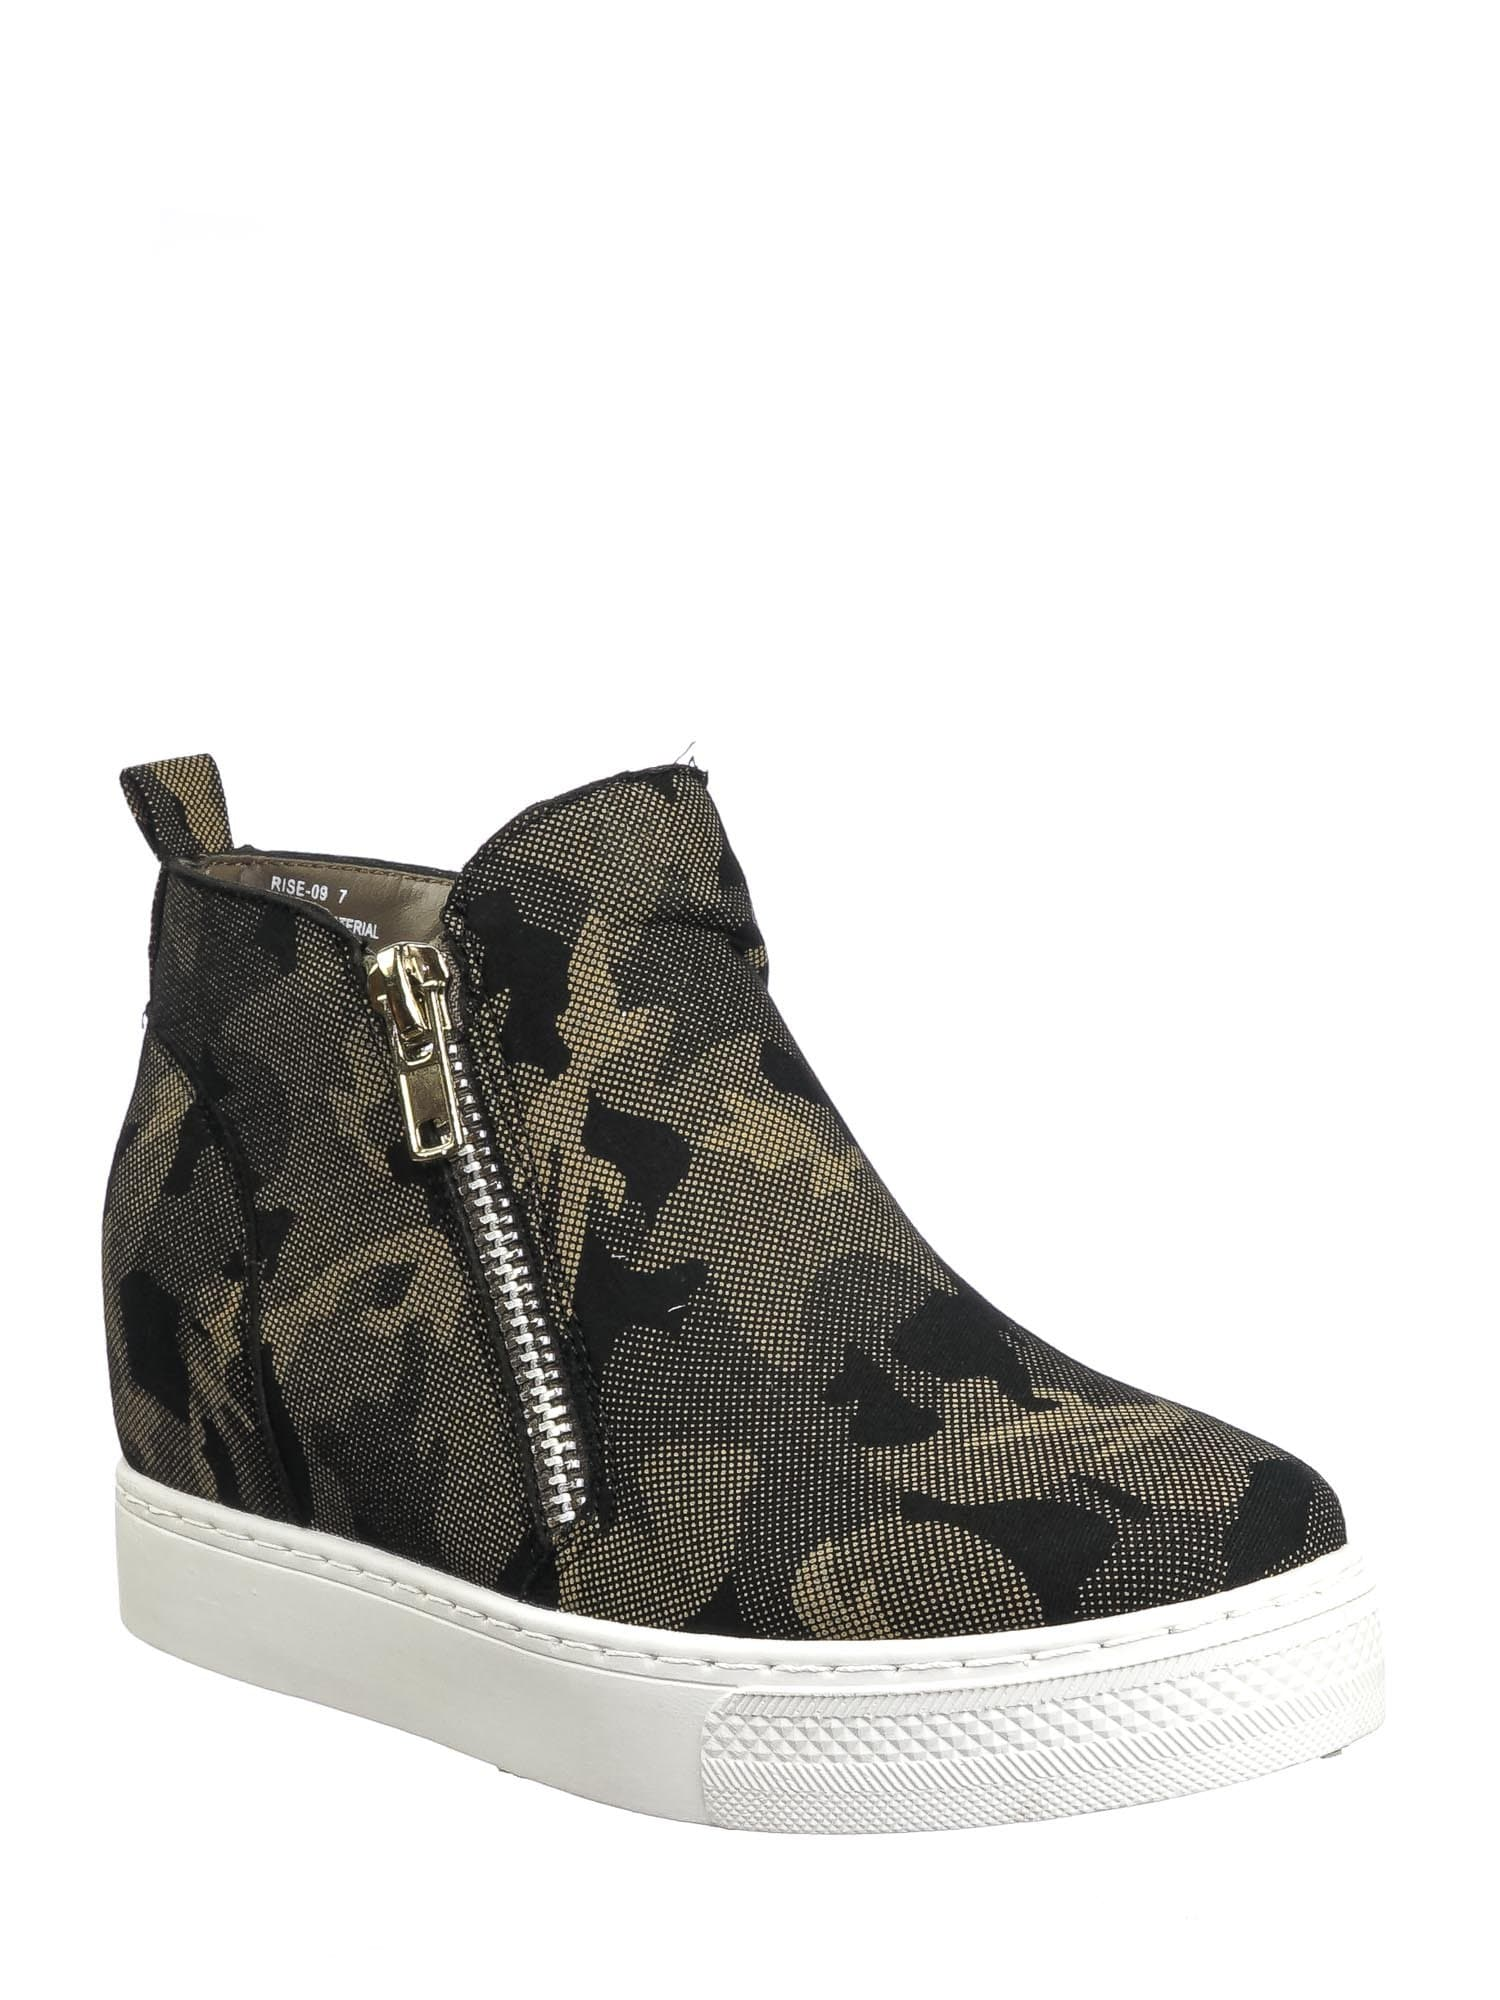 Rise09 Gray Camouflage Zipper Platform Sneaker - Women Animal Print Fashion Athletic Shoes